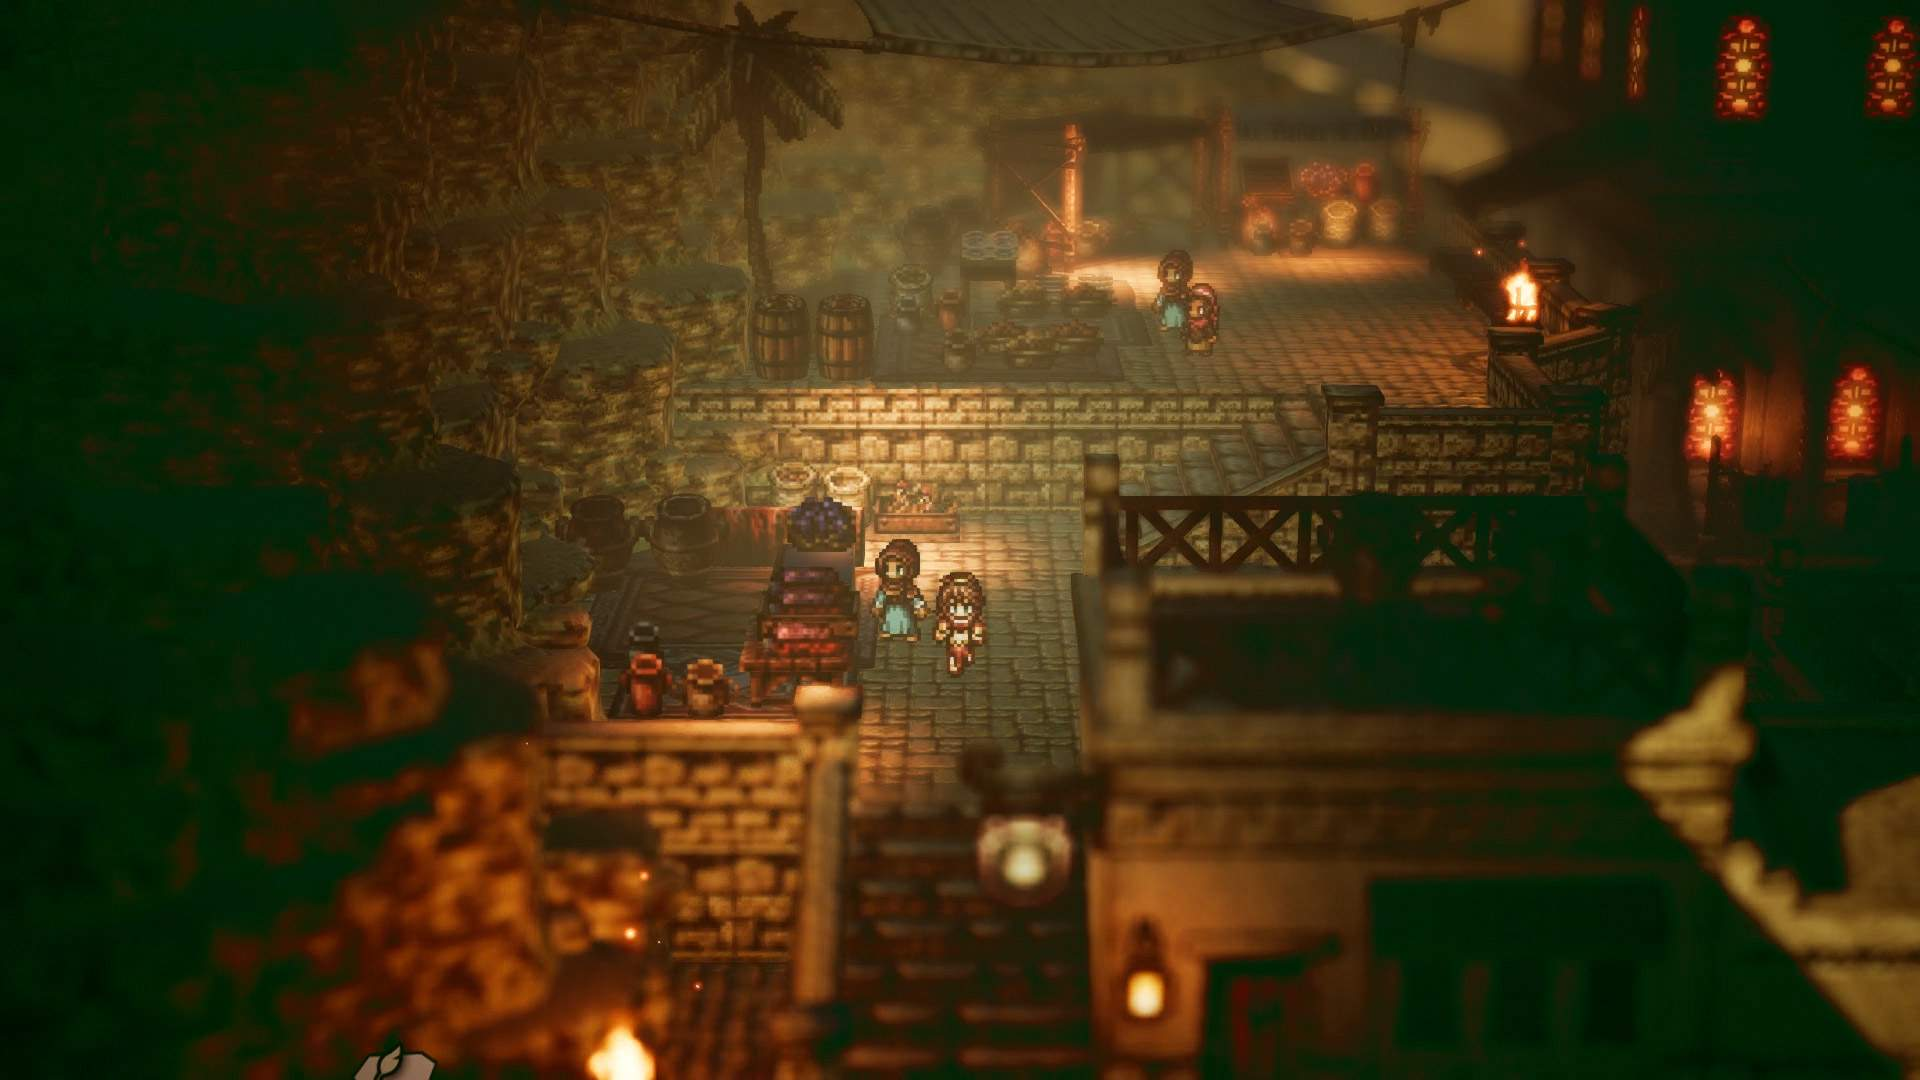 Gameplay screenshot of Primose passing another character in the middle of a medieval-style town